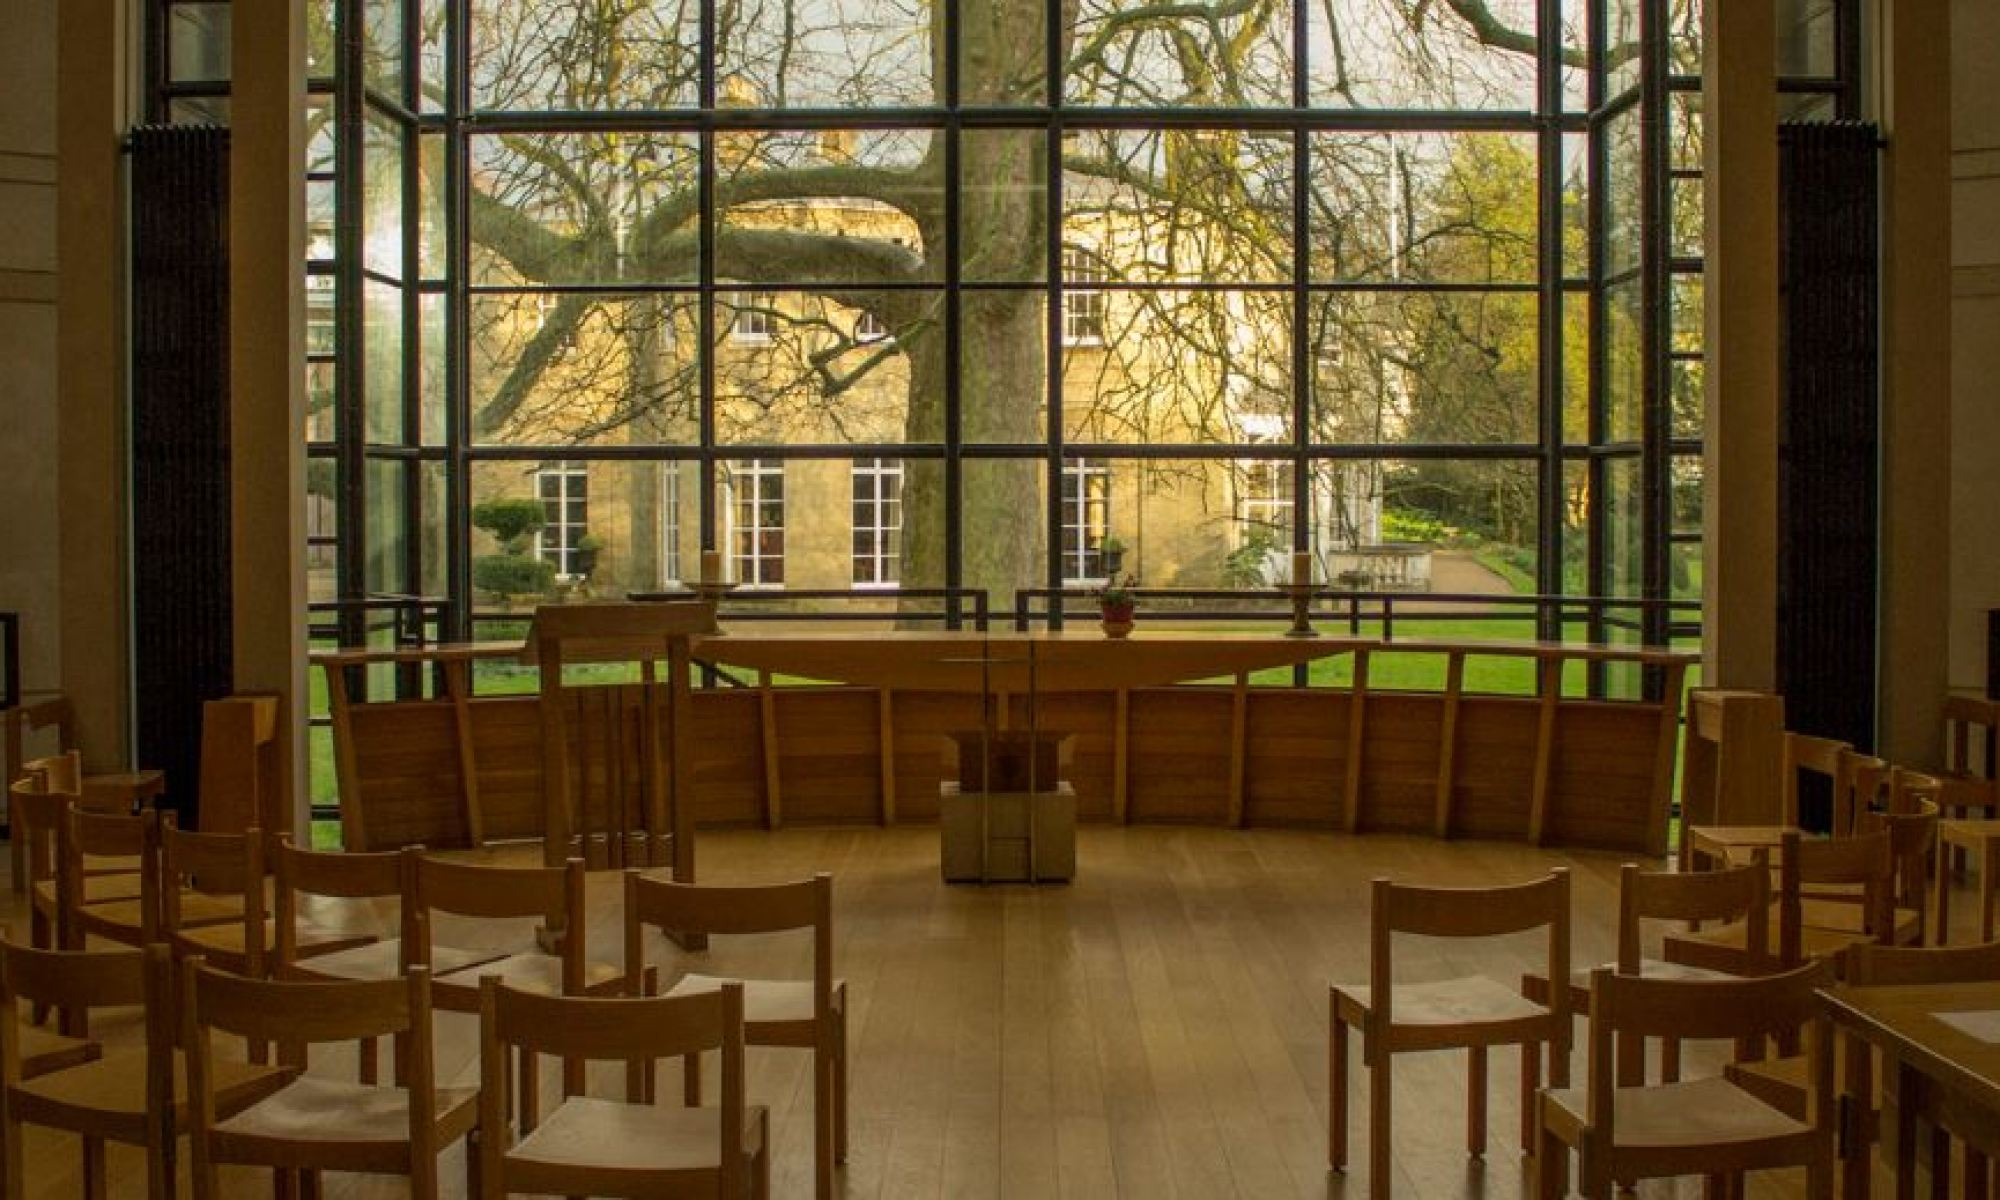 Photograph of the Chapel at Fitzwilliam College, Cambridge. Credit: Mihnea Maftei. (CC 2.0)